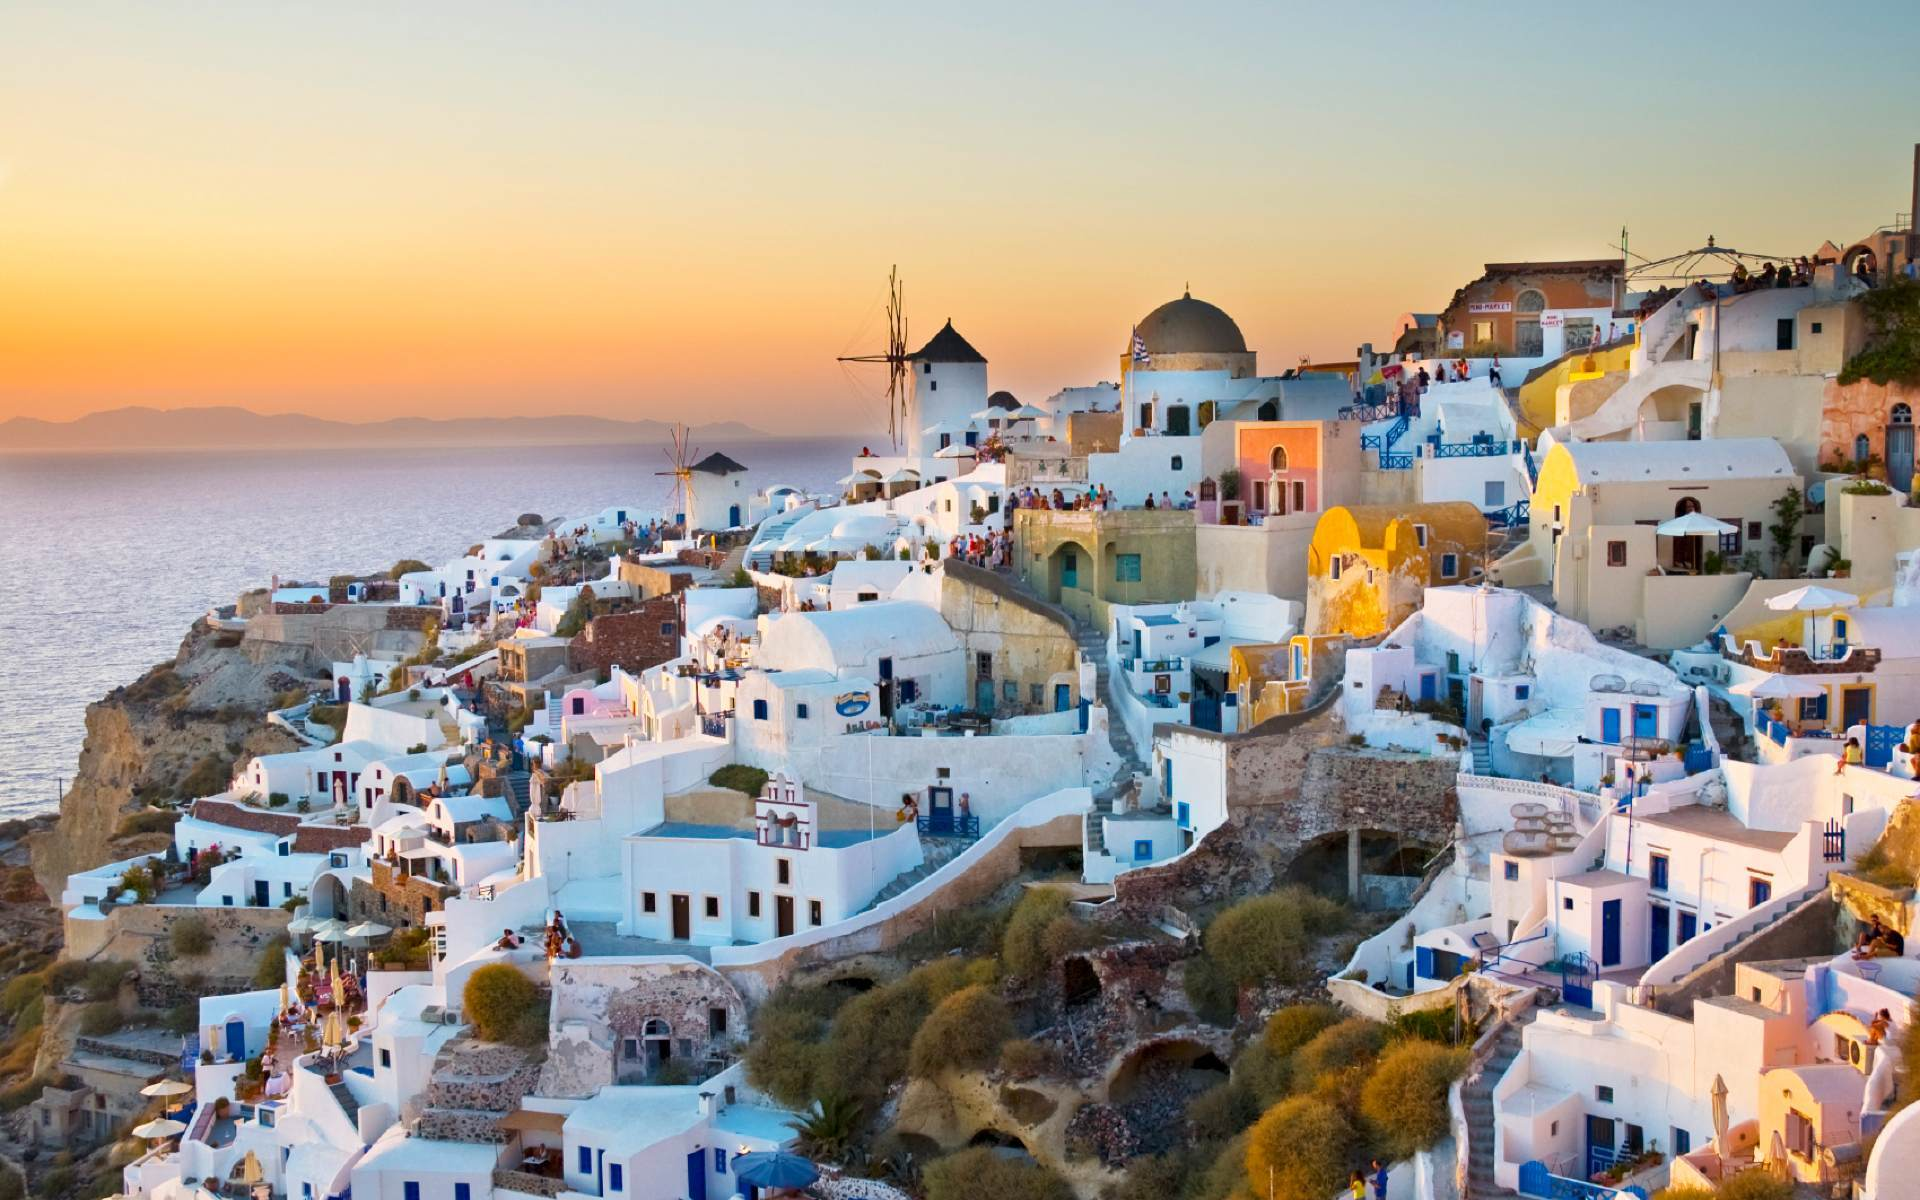 Grèce - santorini photo